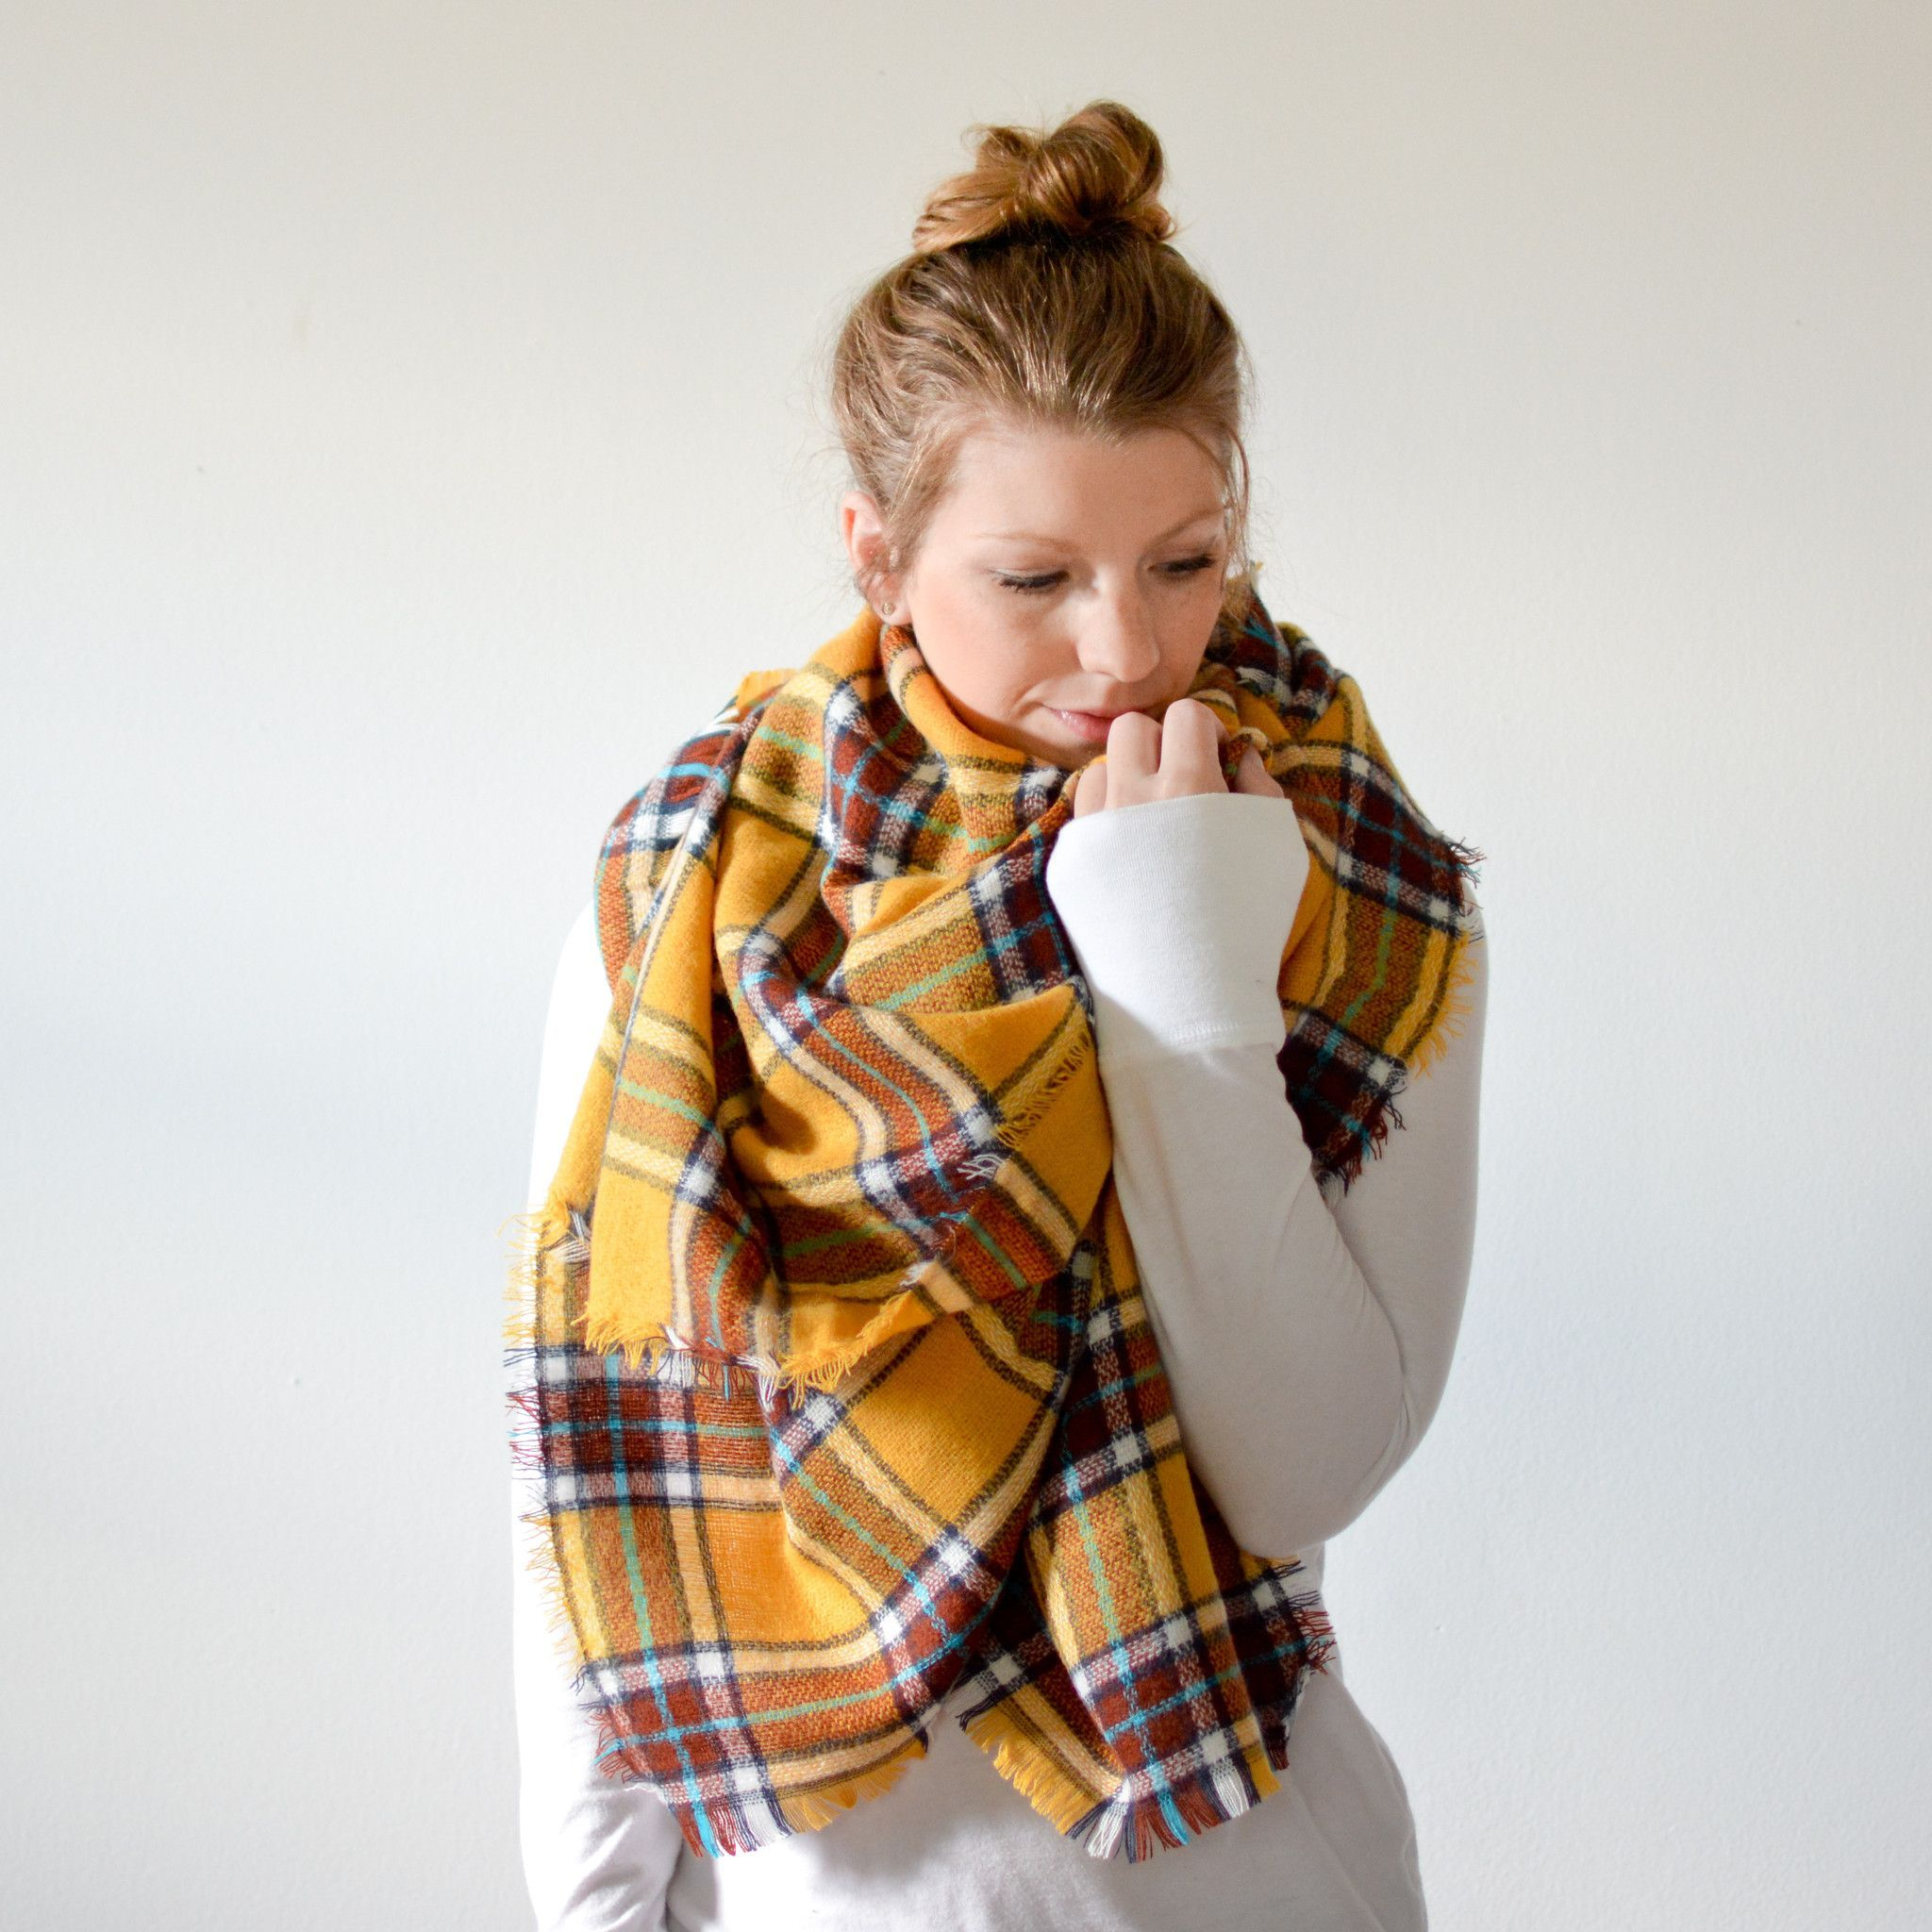 Bundle Up This Blanket Scarf Is Perfect For Staying Warm In The Rodeo Bundling 5 Cooler Temps